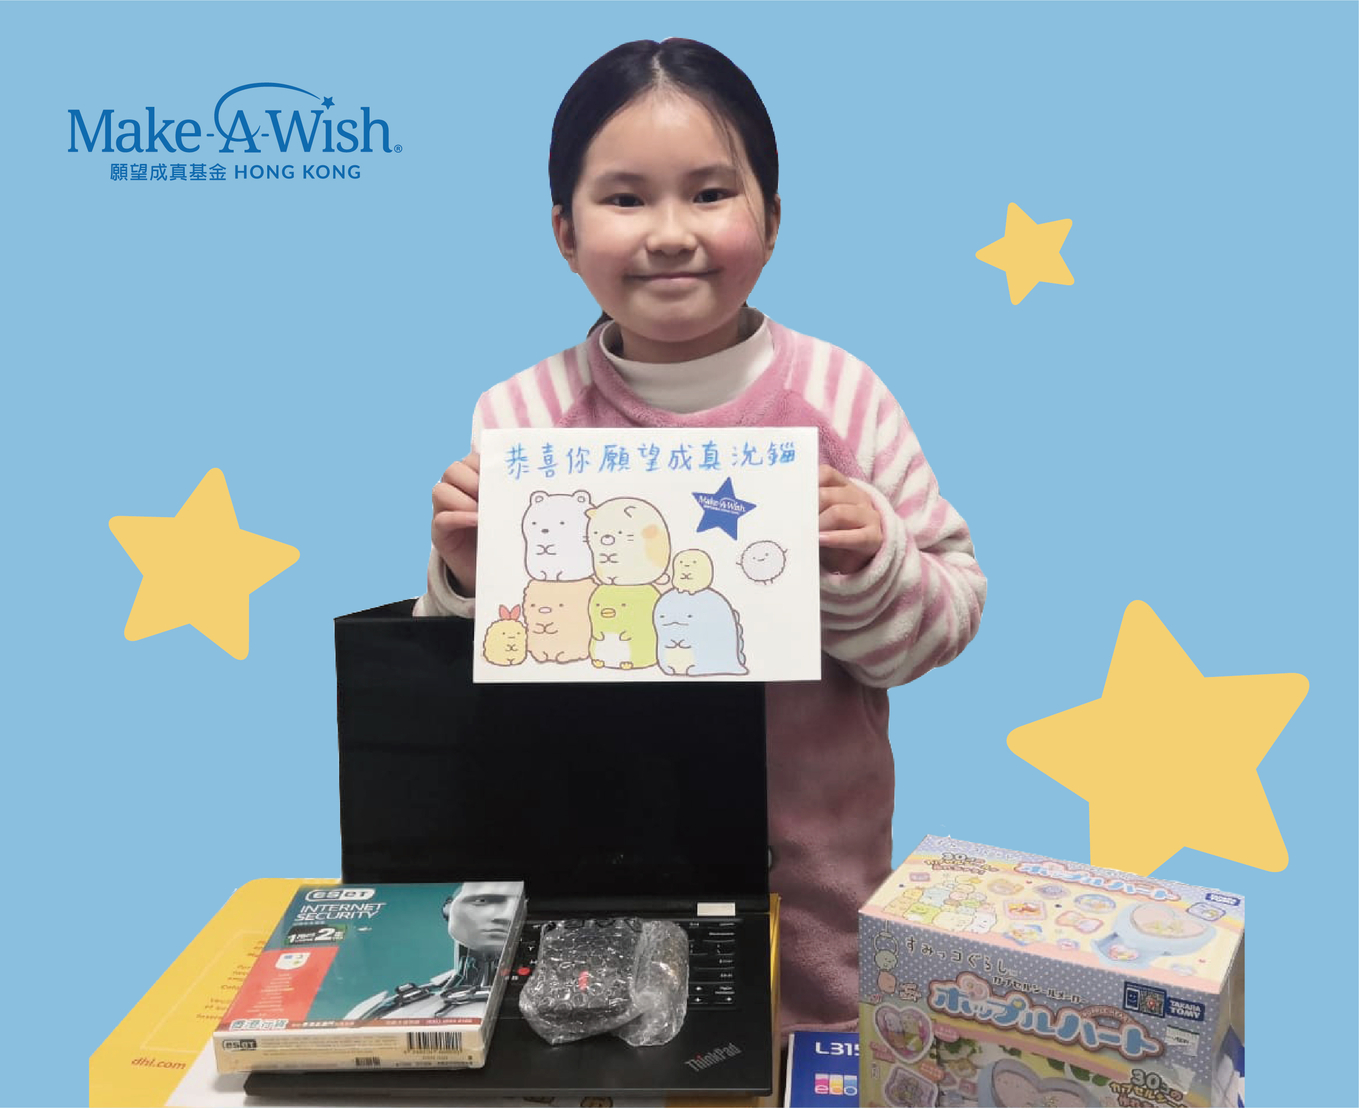 Support the wish to have a computer for children with critical illnesses